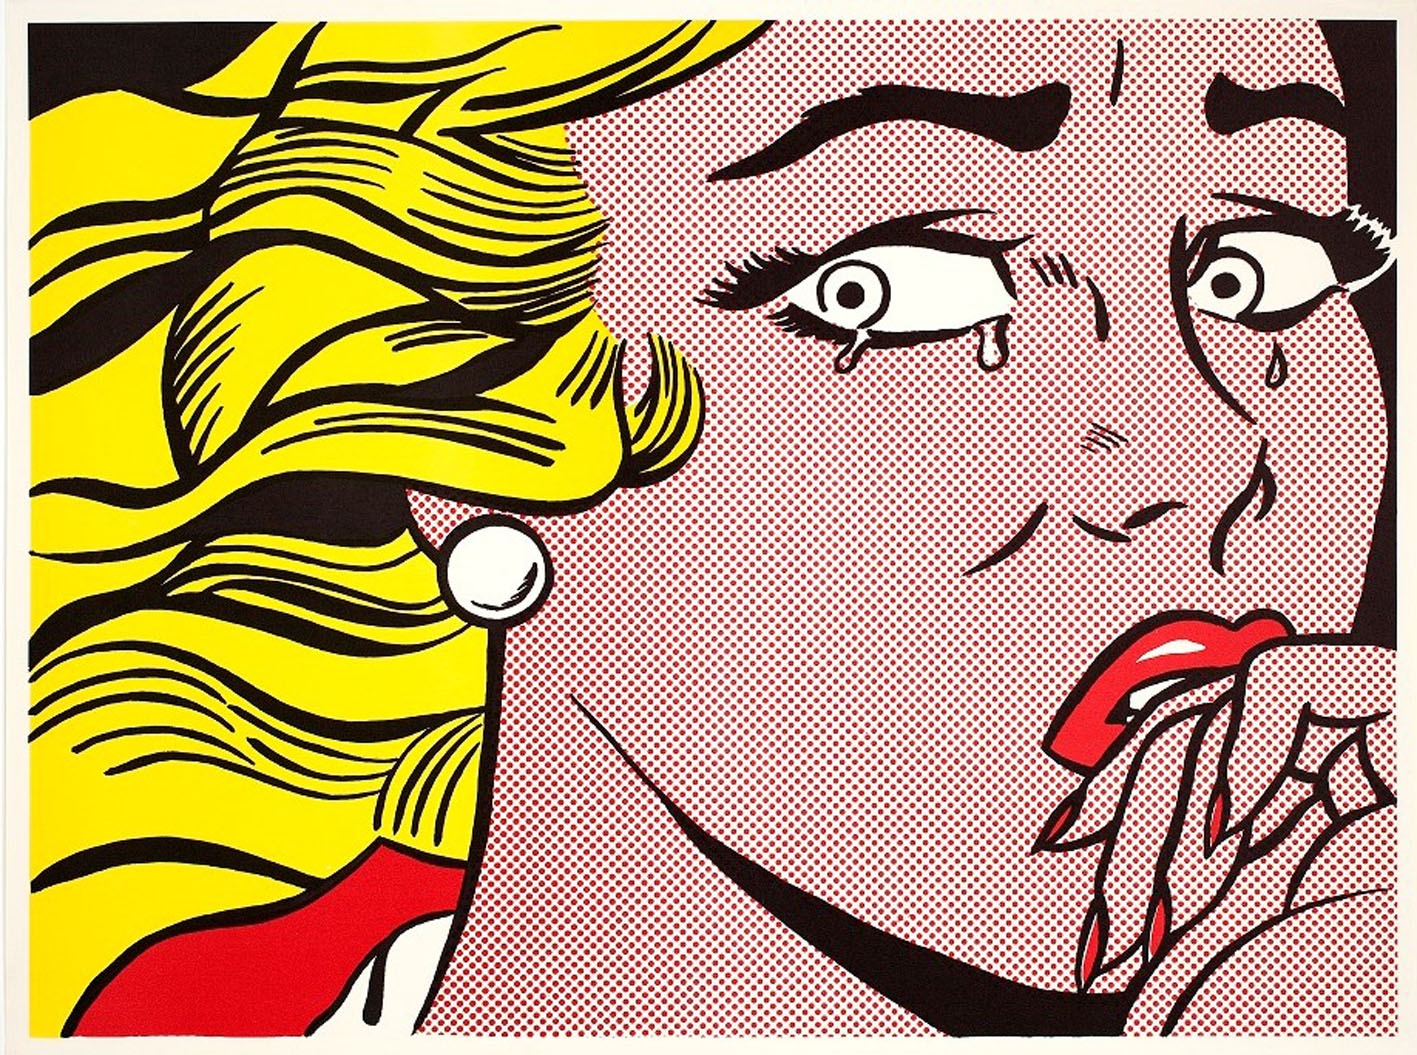 Roy Lichtenstein, Crying Girl, 1963 © Estate of Roy Lichtenstein SIAE 2018